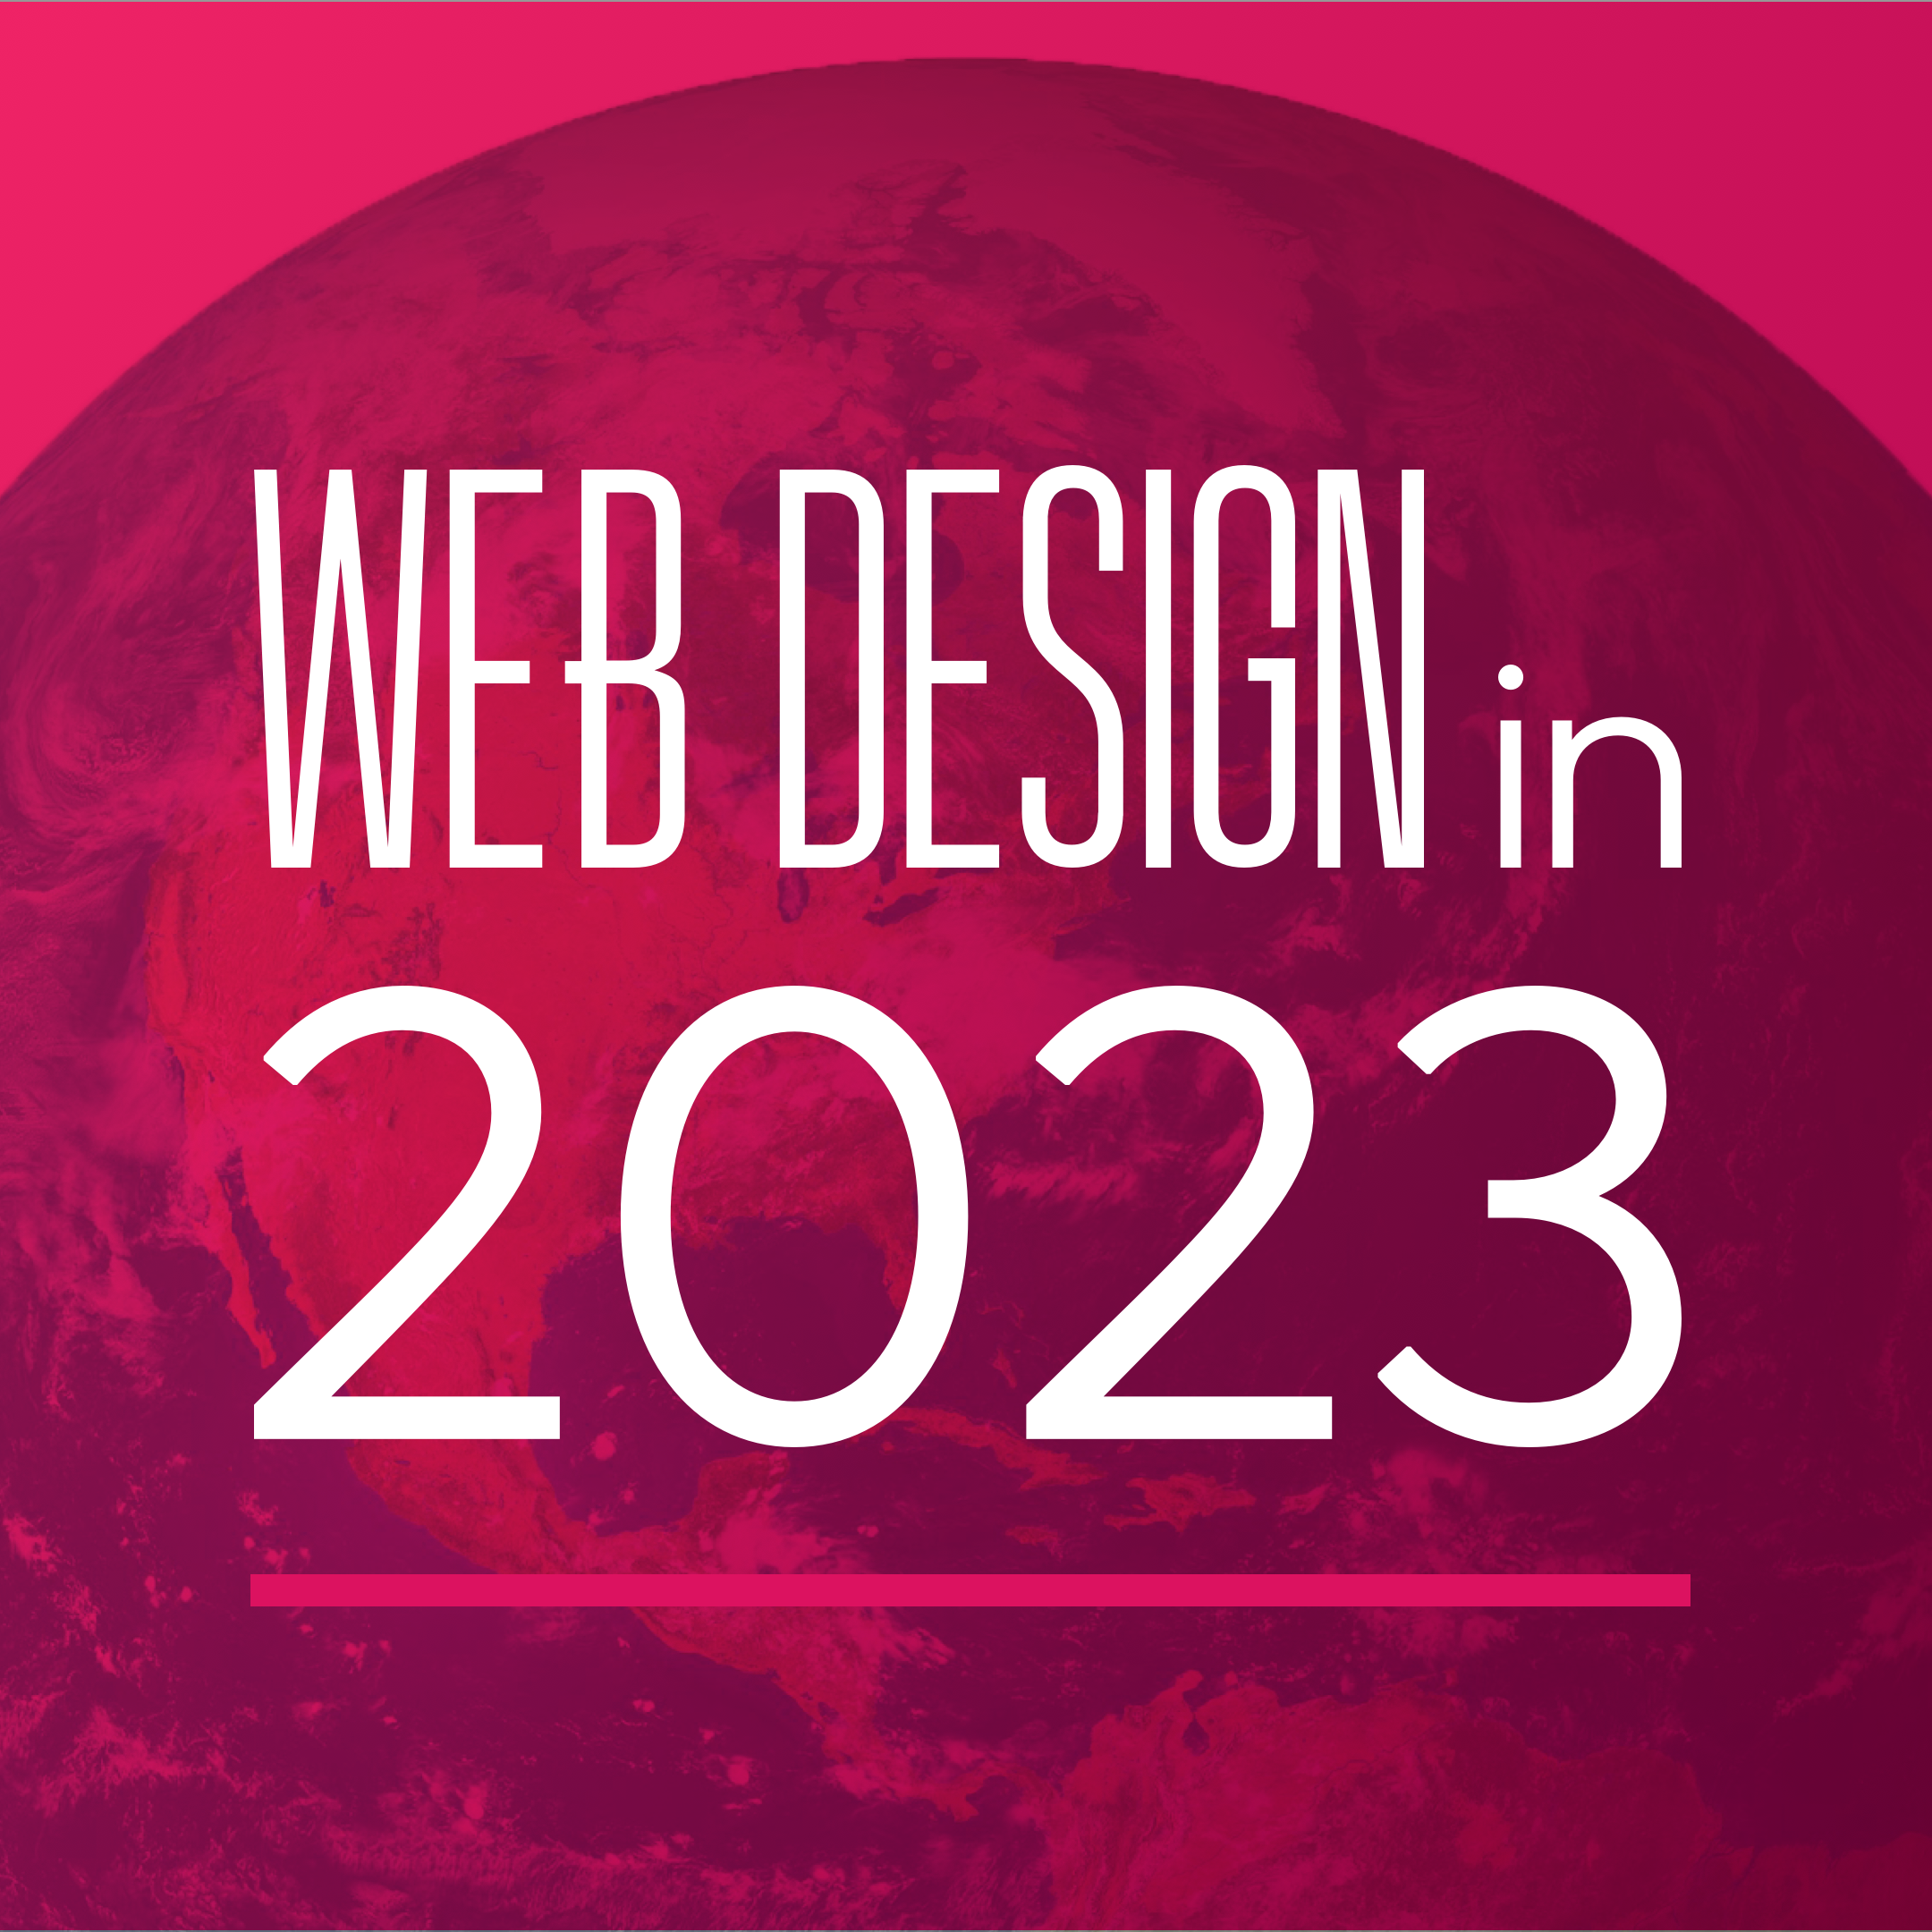 web design in 2023